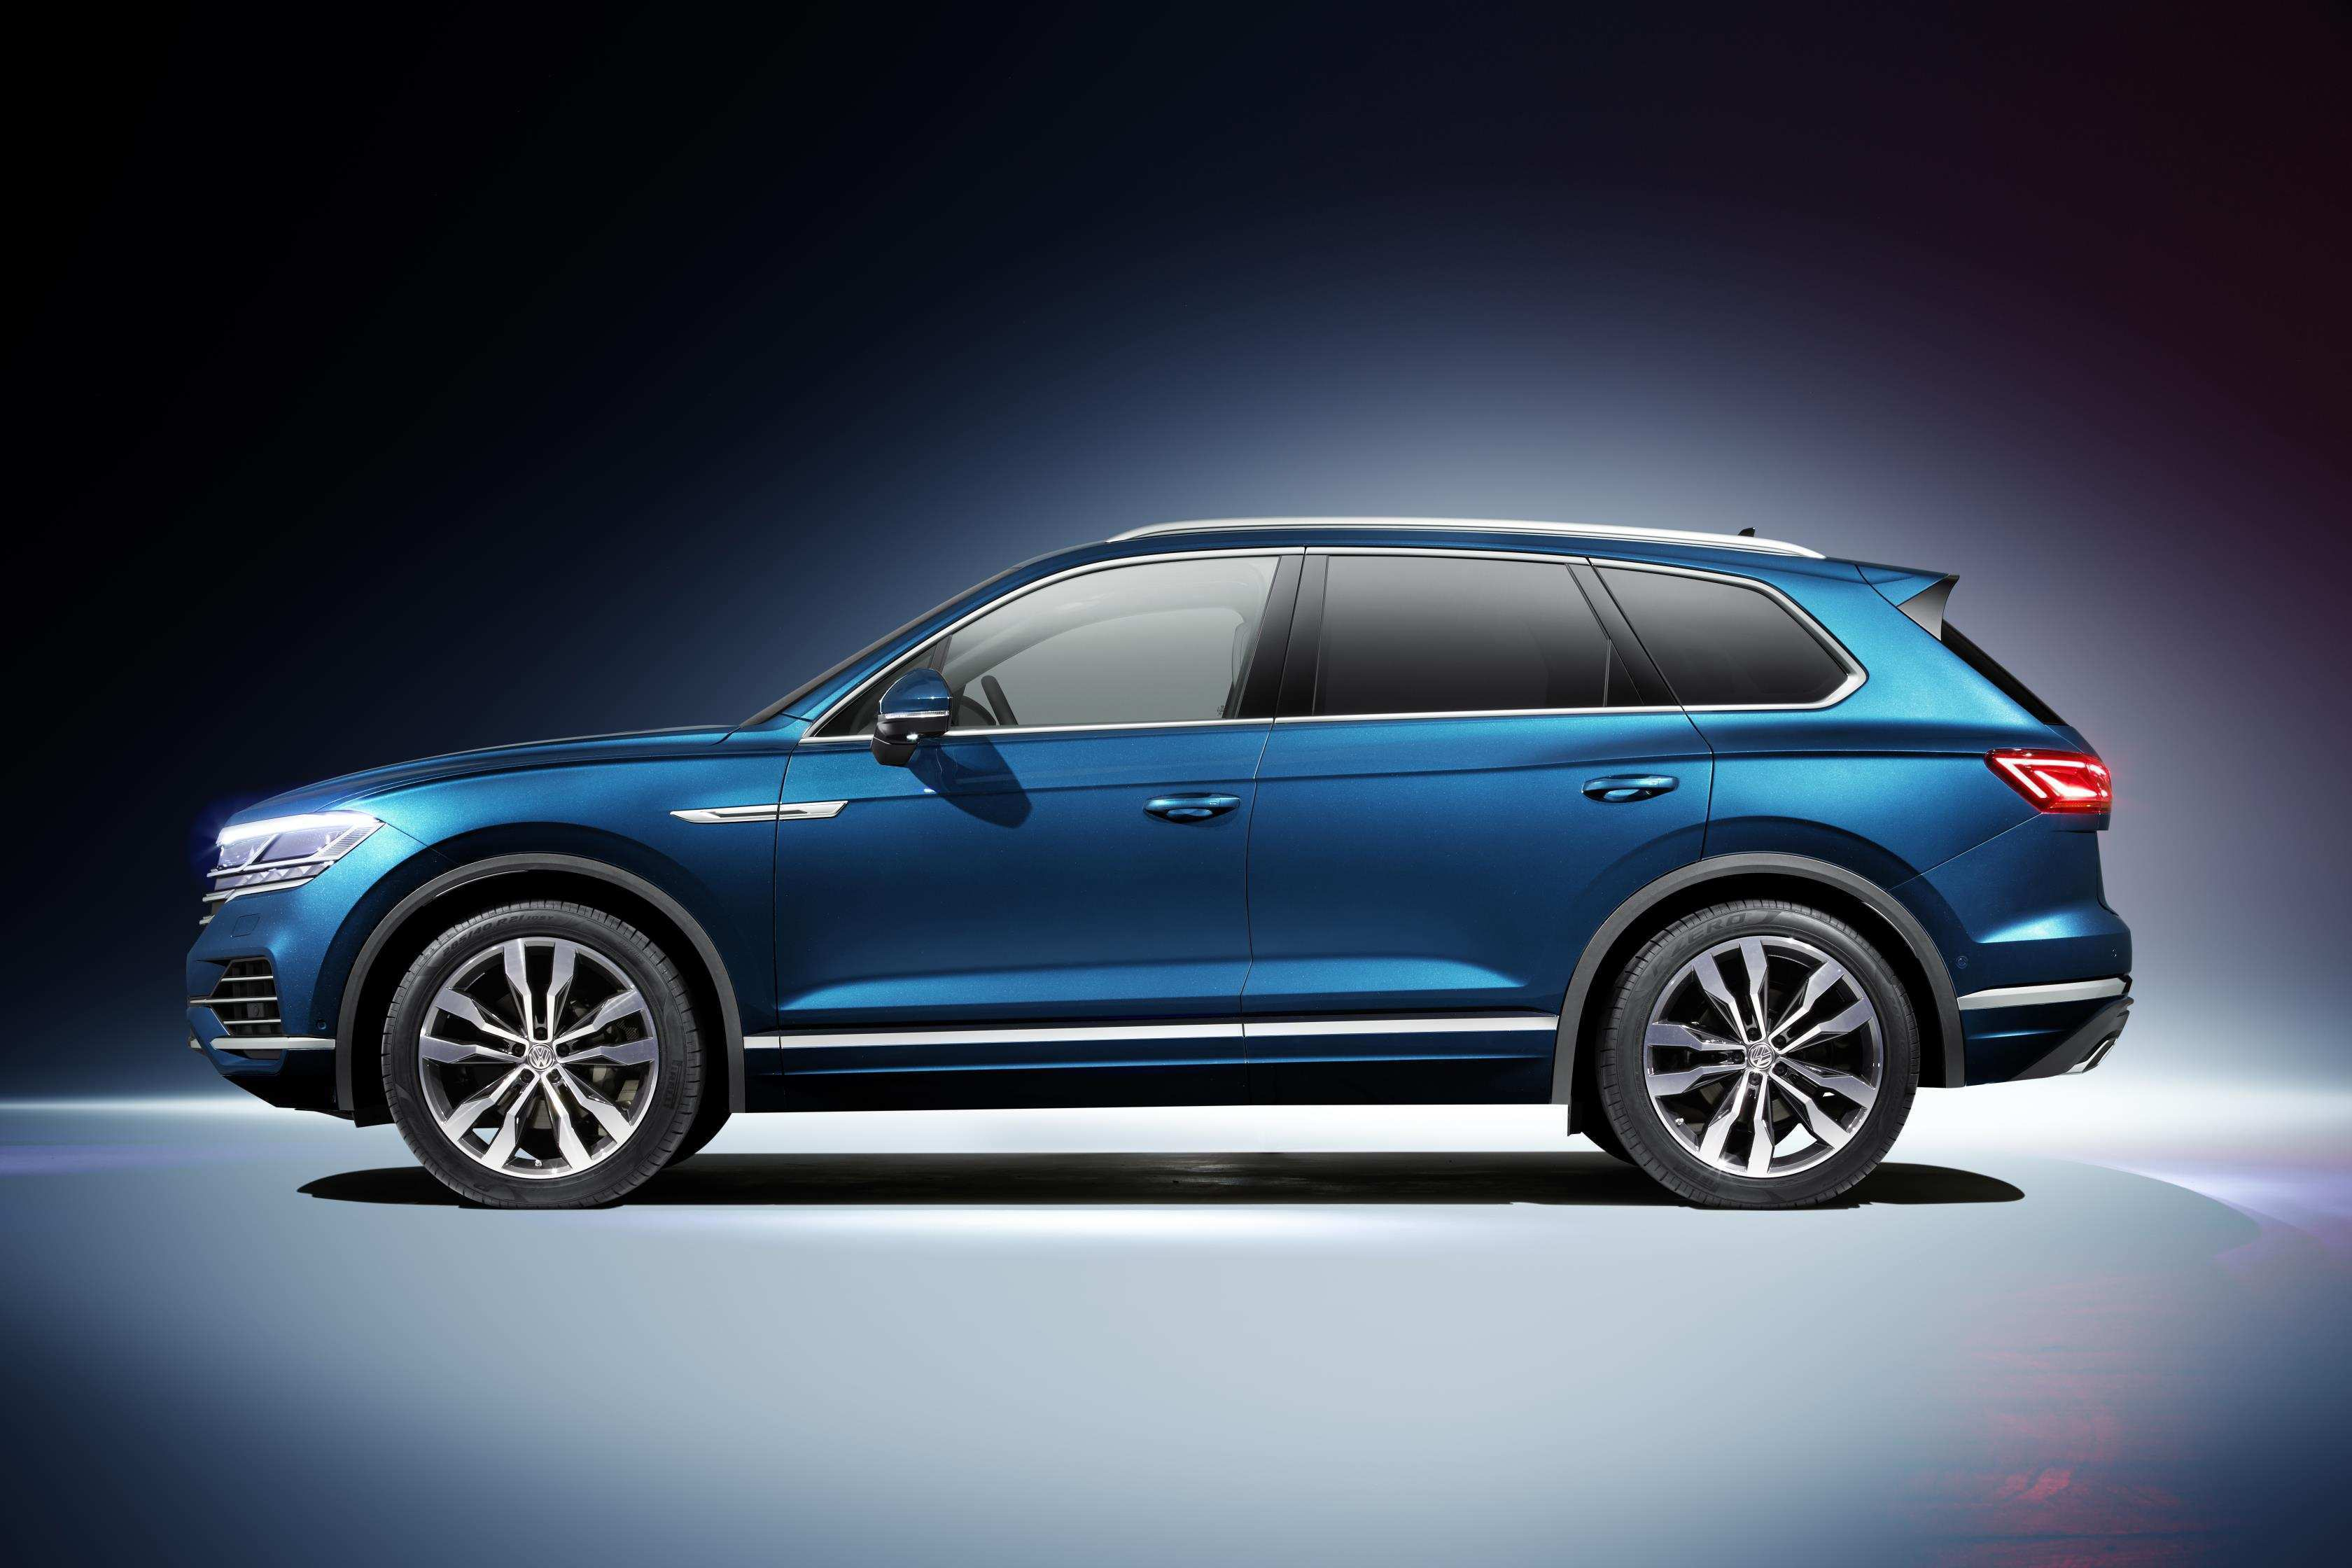 48 New Volkswagen Touareg 2020 Exterior In India Research New with Volkswagen Touareg 2020 Exterior In India